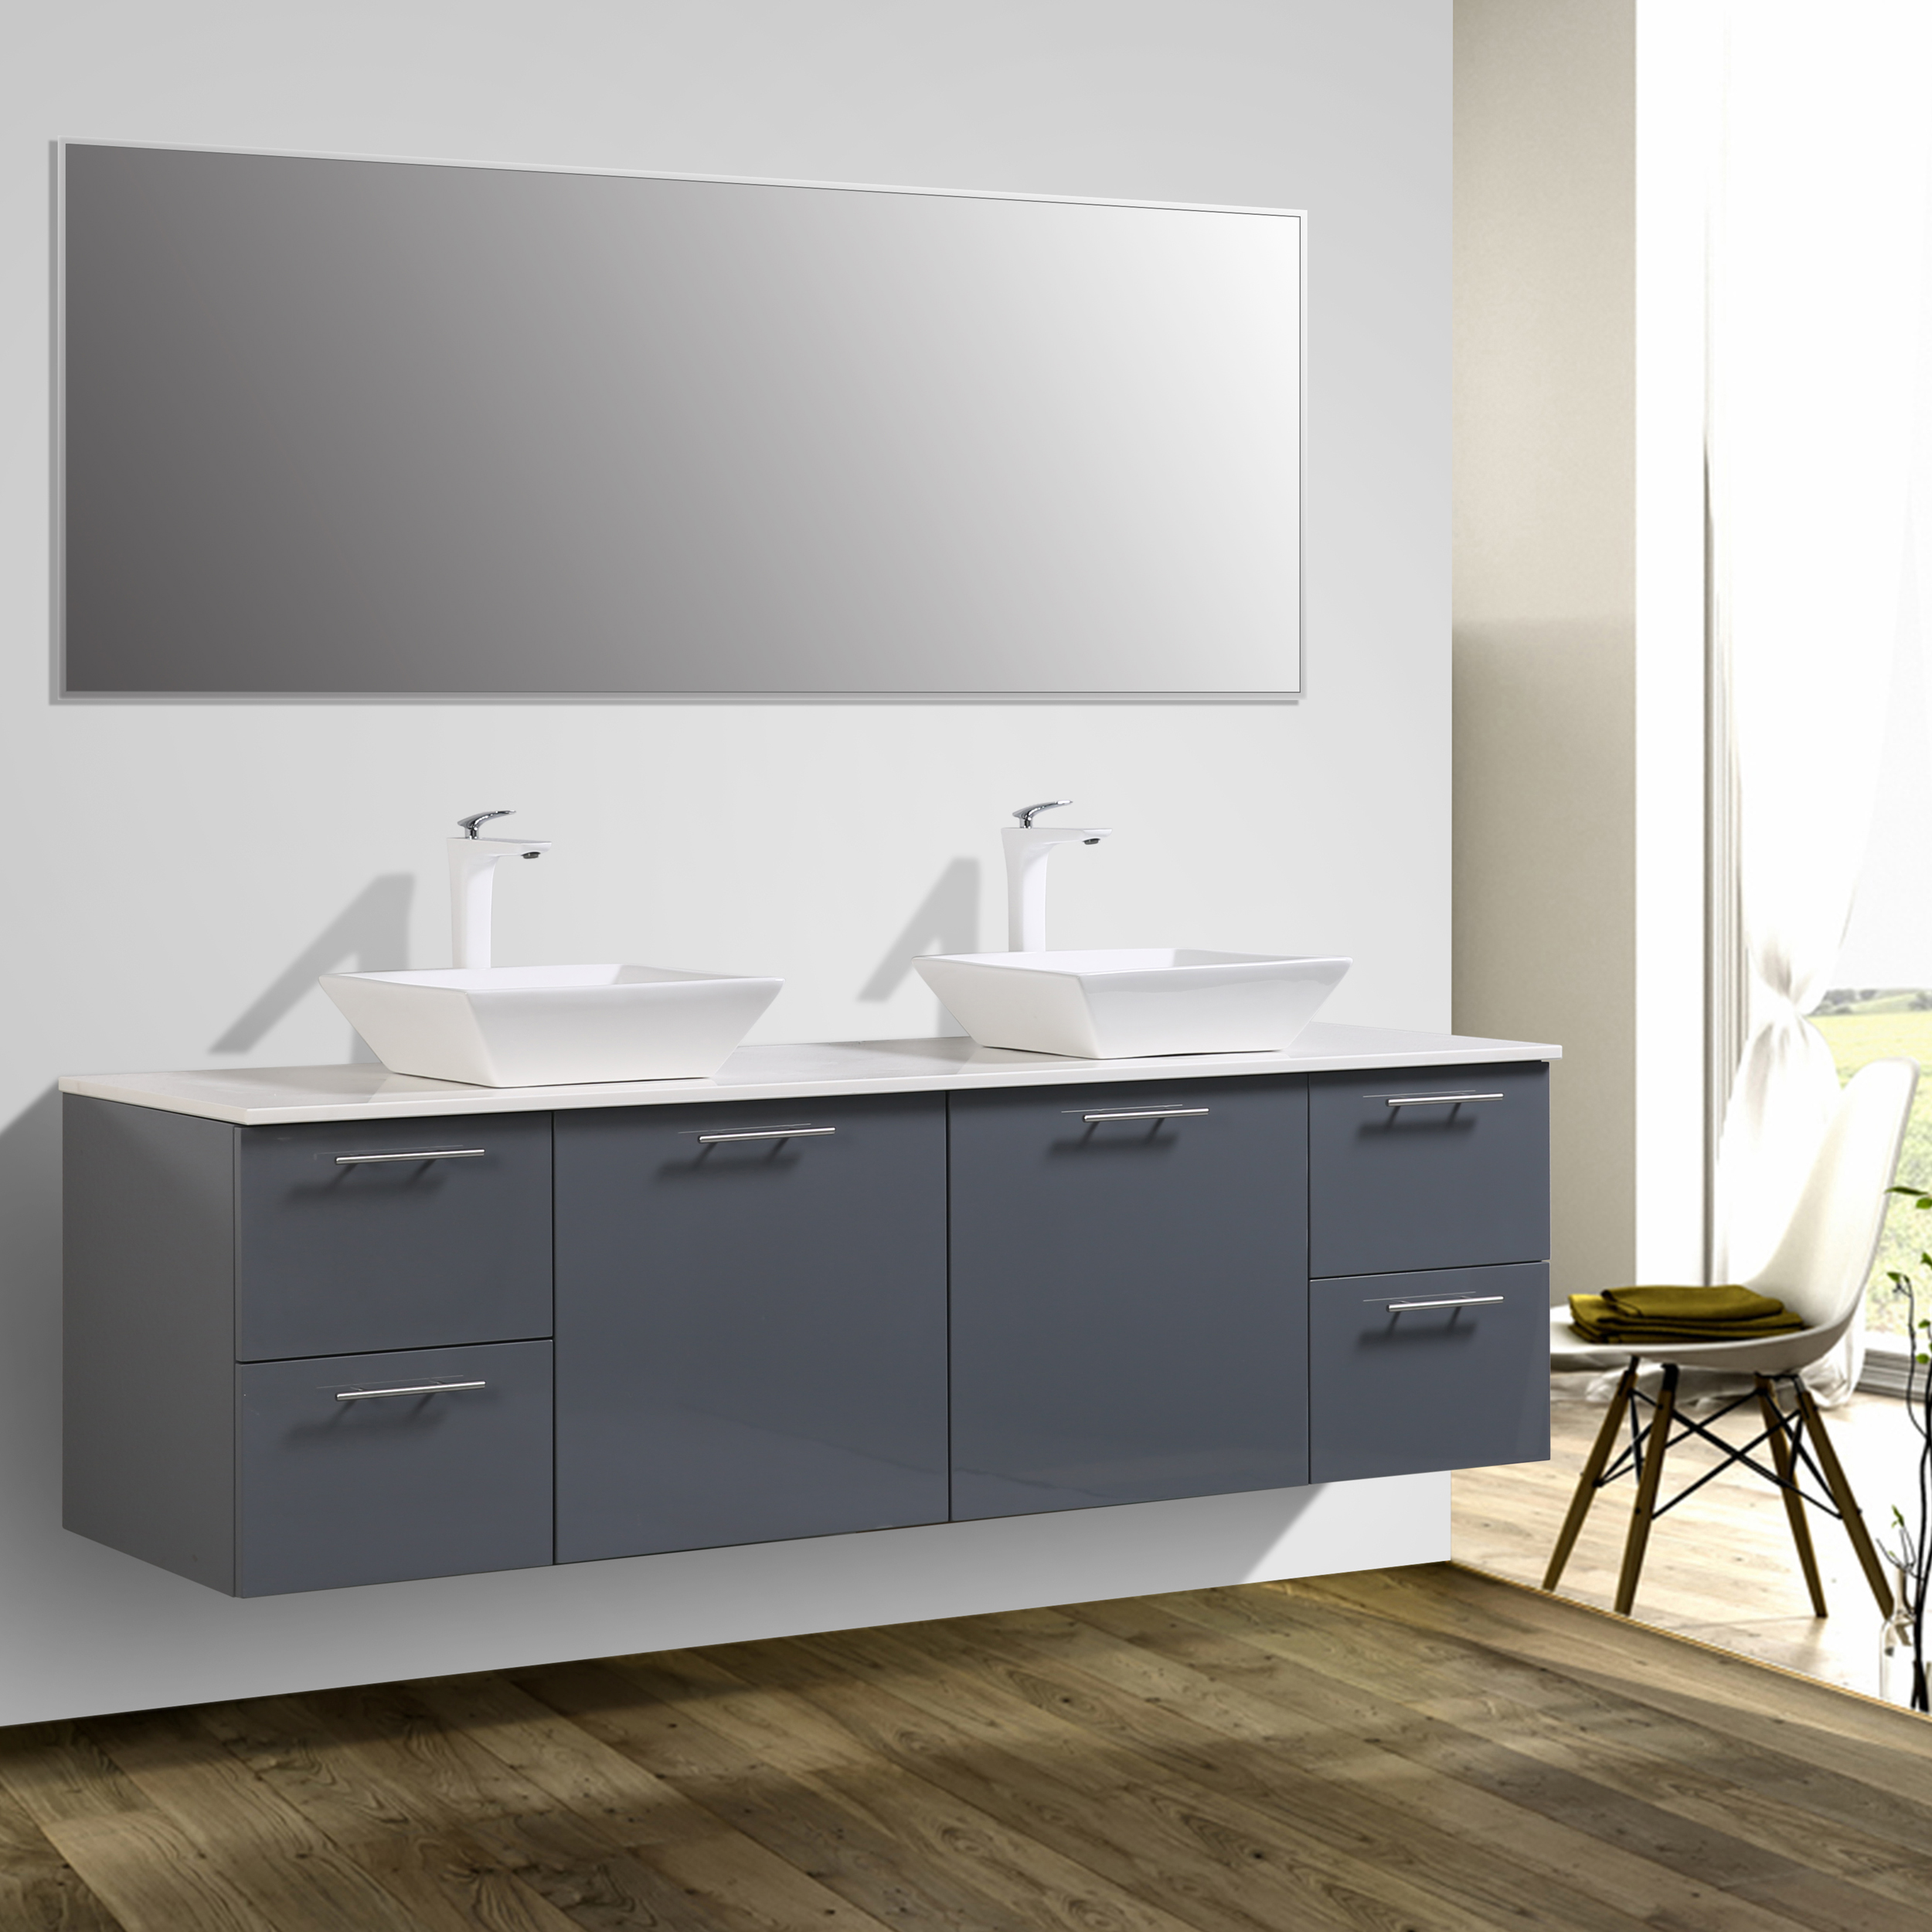 with sink are the vanity endless concrete sinks vanities bathroom vessel possibilities